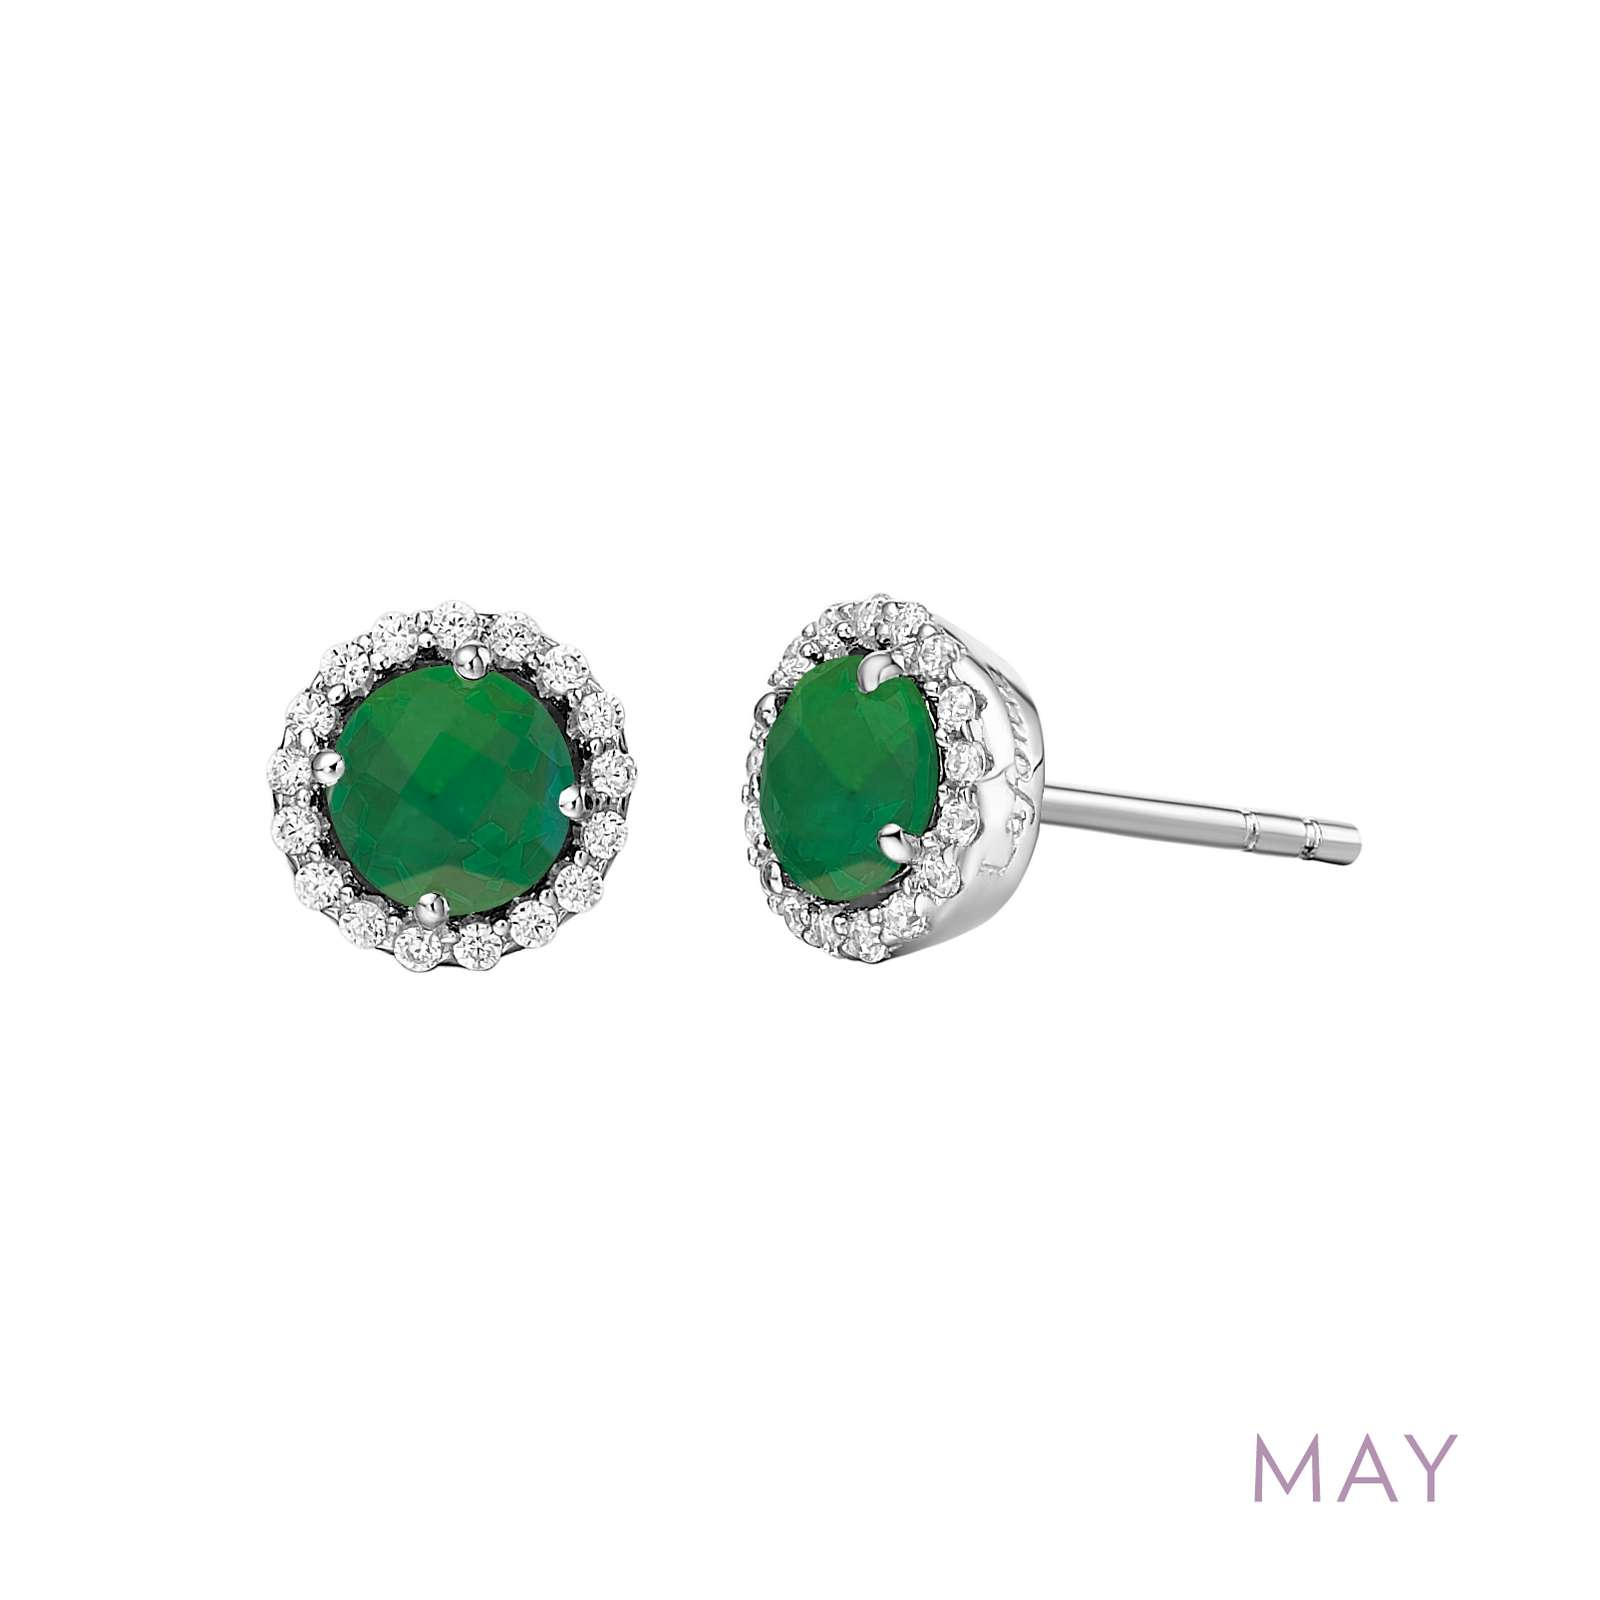 May - Emerald.  Adorn yourself with Lafonn's birthstone jewelry. These halo stud earrings are set with simulated emeralds surrounded by Lafonn's signature Lassaire simulated diamonds in sterling silver bonded with platinum.